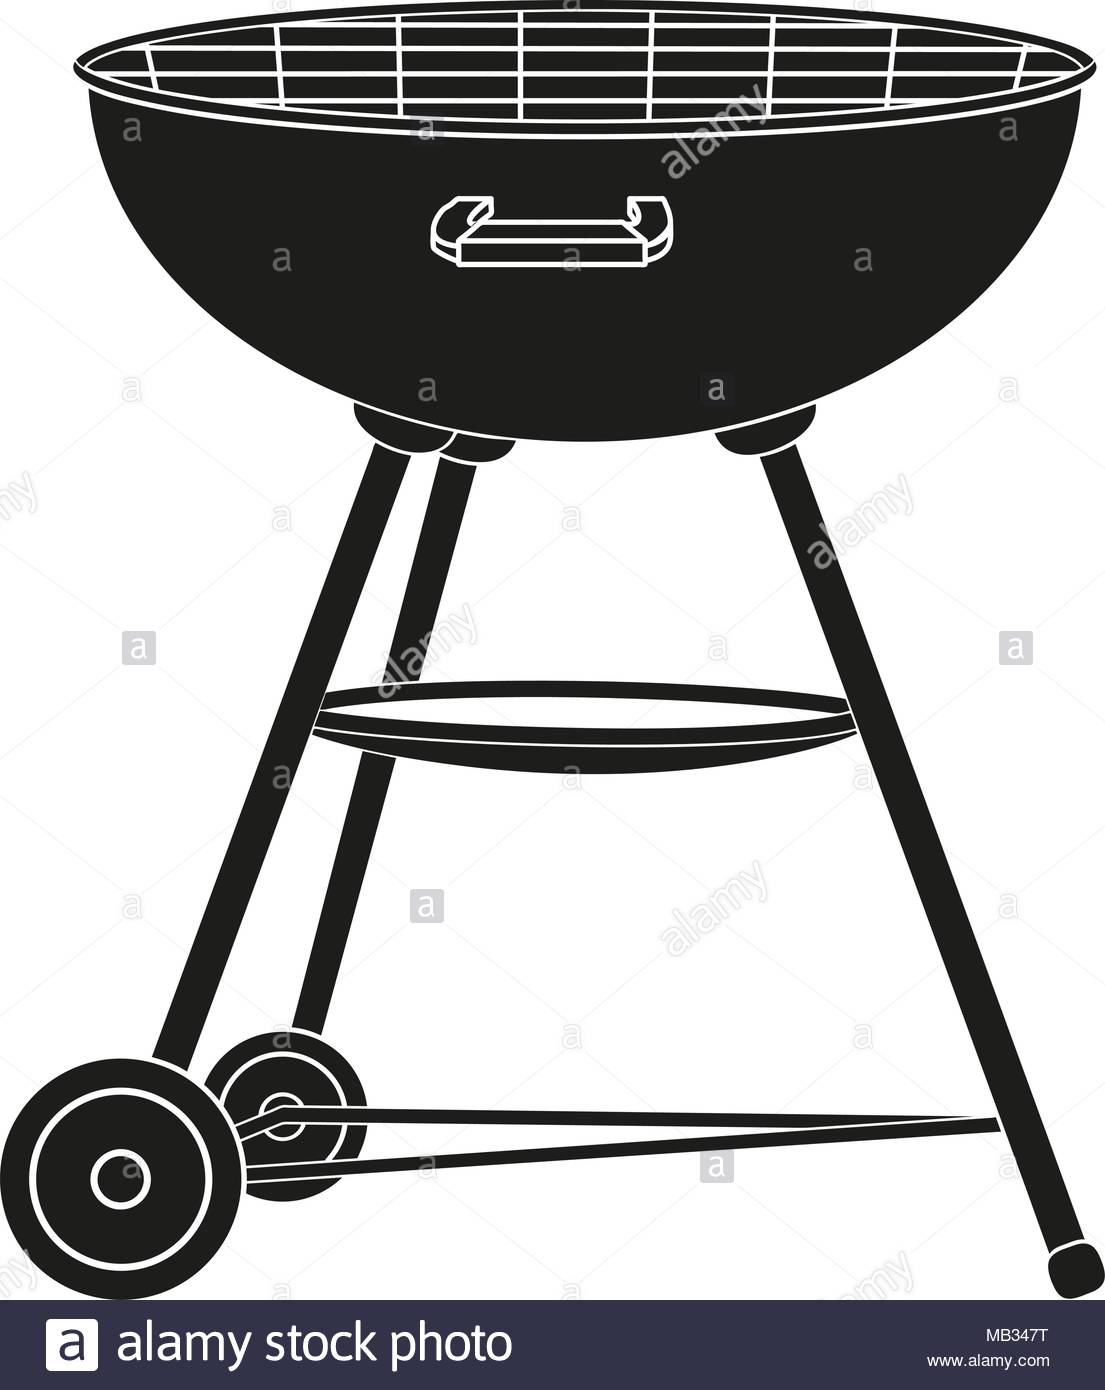 1105x1390 Bbq Grill On Wheel Silhouette. Outdoors Recreation Vector